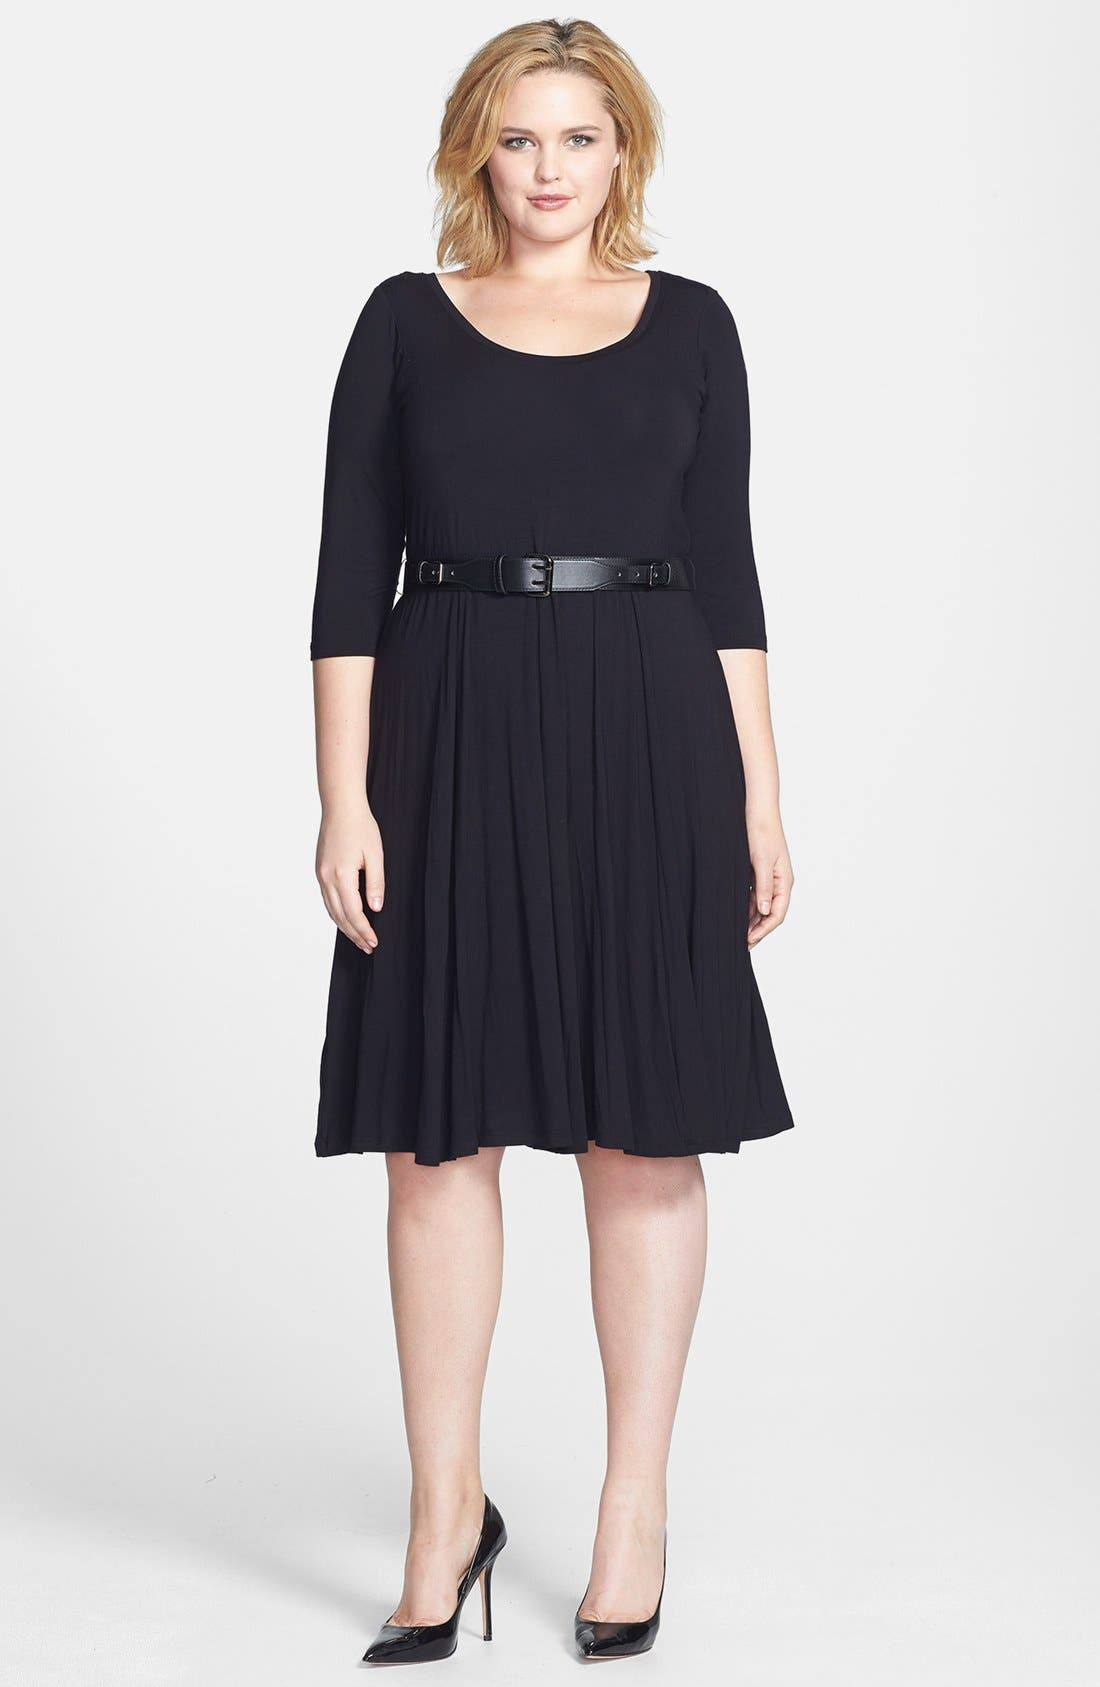 Alternate Image 1 Selected - Calvin Klein Belted Jersey Fit & Flare Dress (Plus Size)